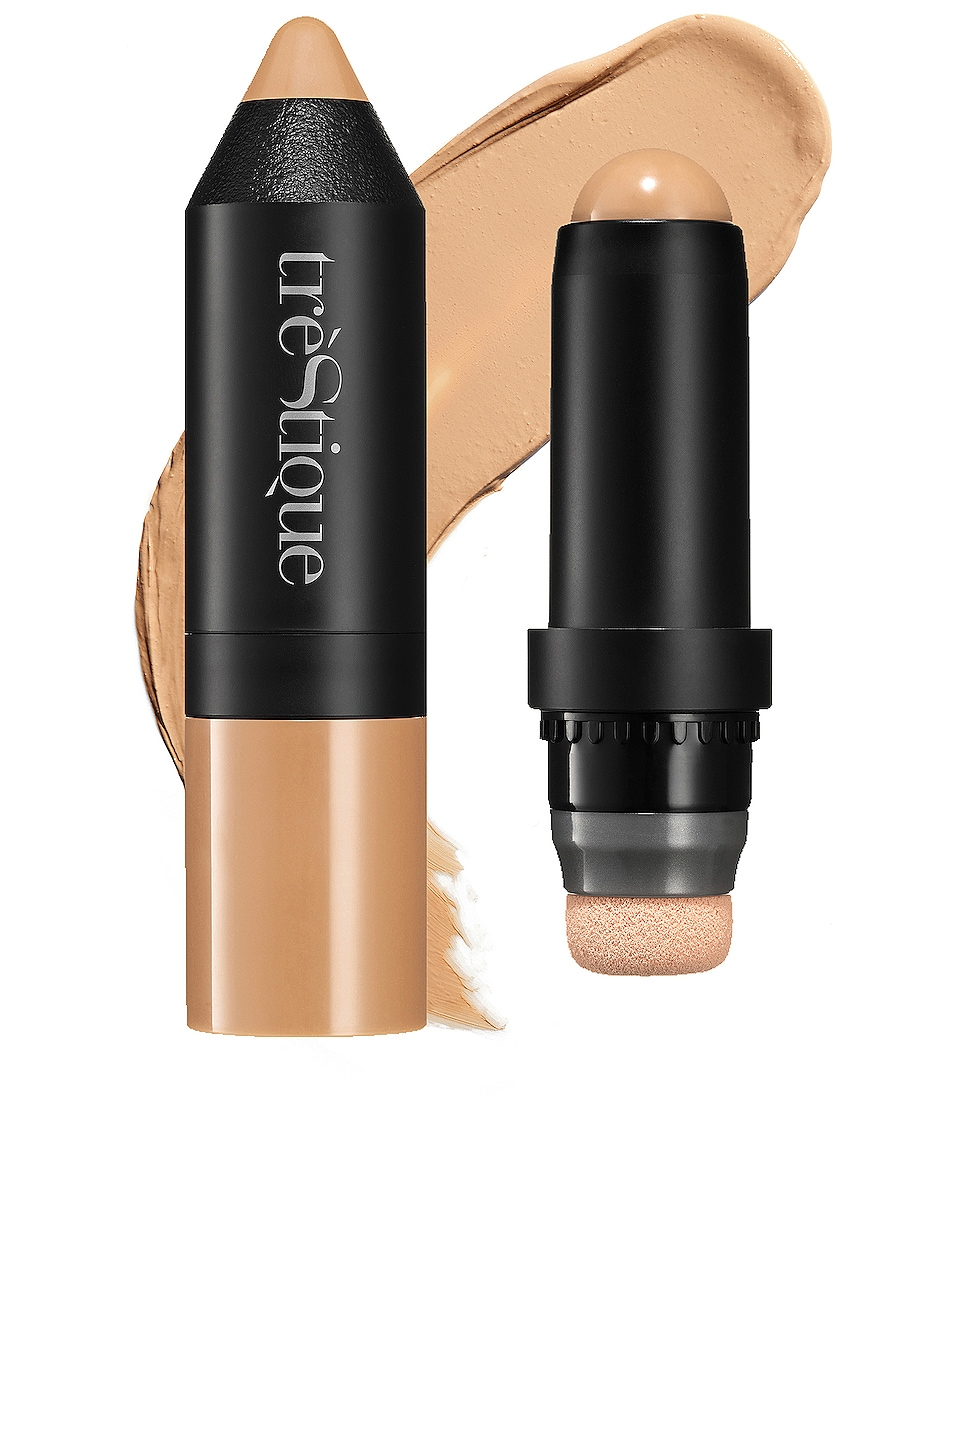 treStiQue Moisturize & Blend Tinted Face Stick in Tulum Nude